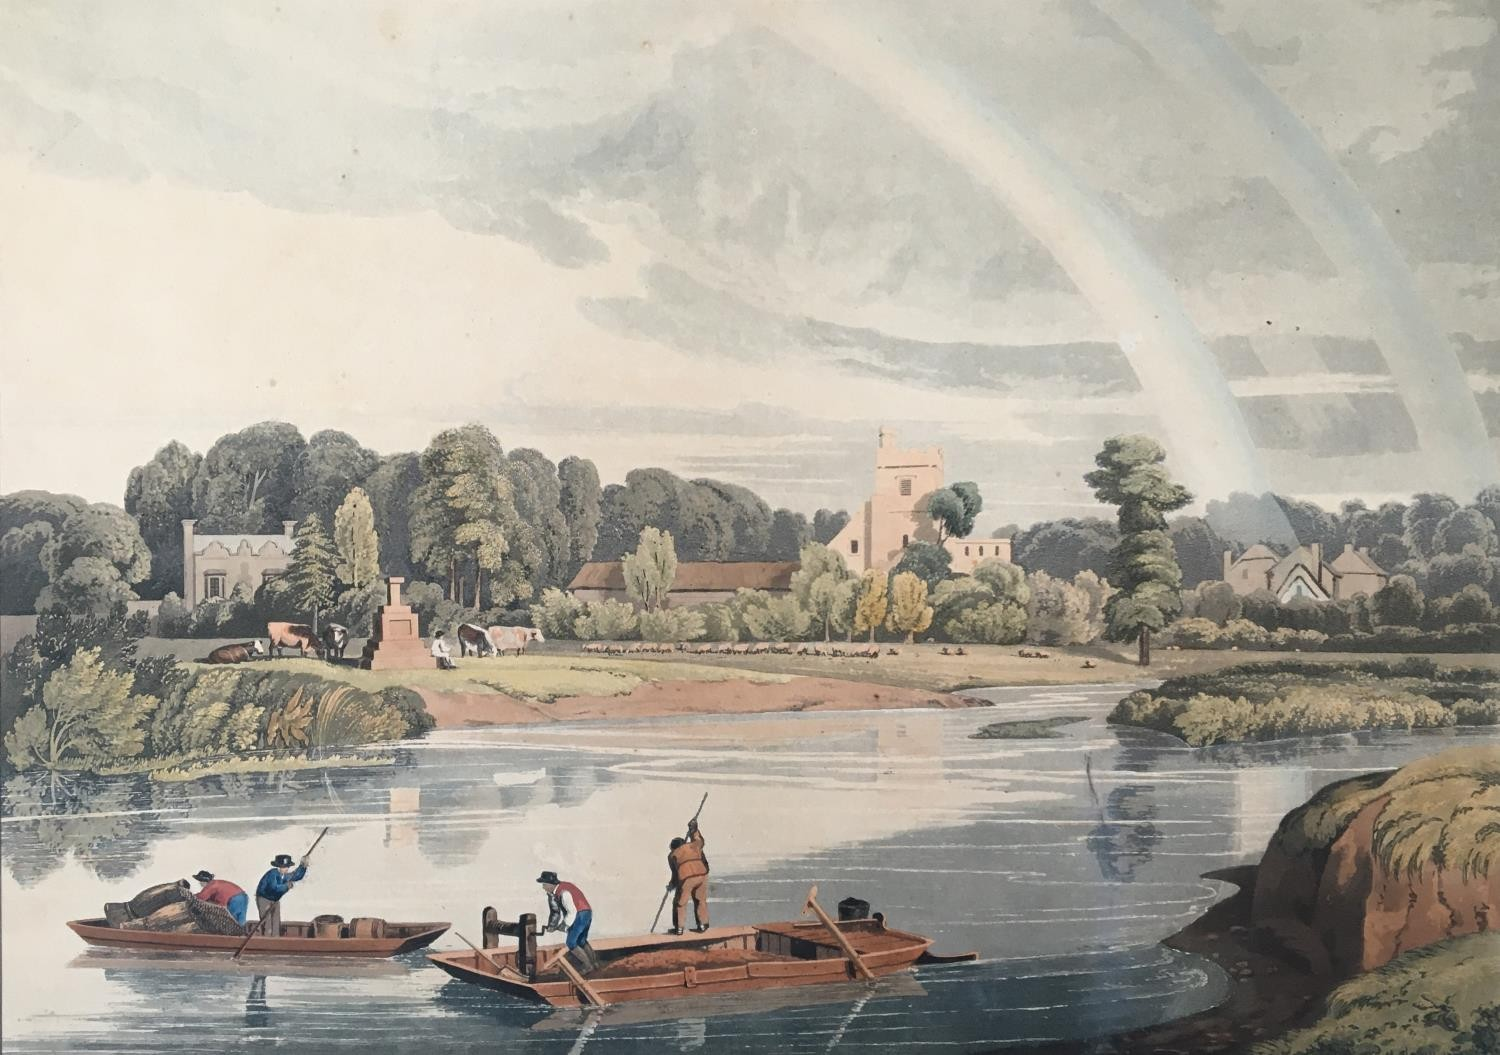 A collection of ten 19th century chromolithographs after William Havell, 'An Island On The Thames - Image 7 of 10